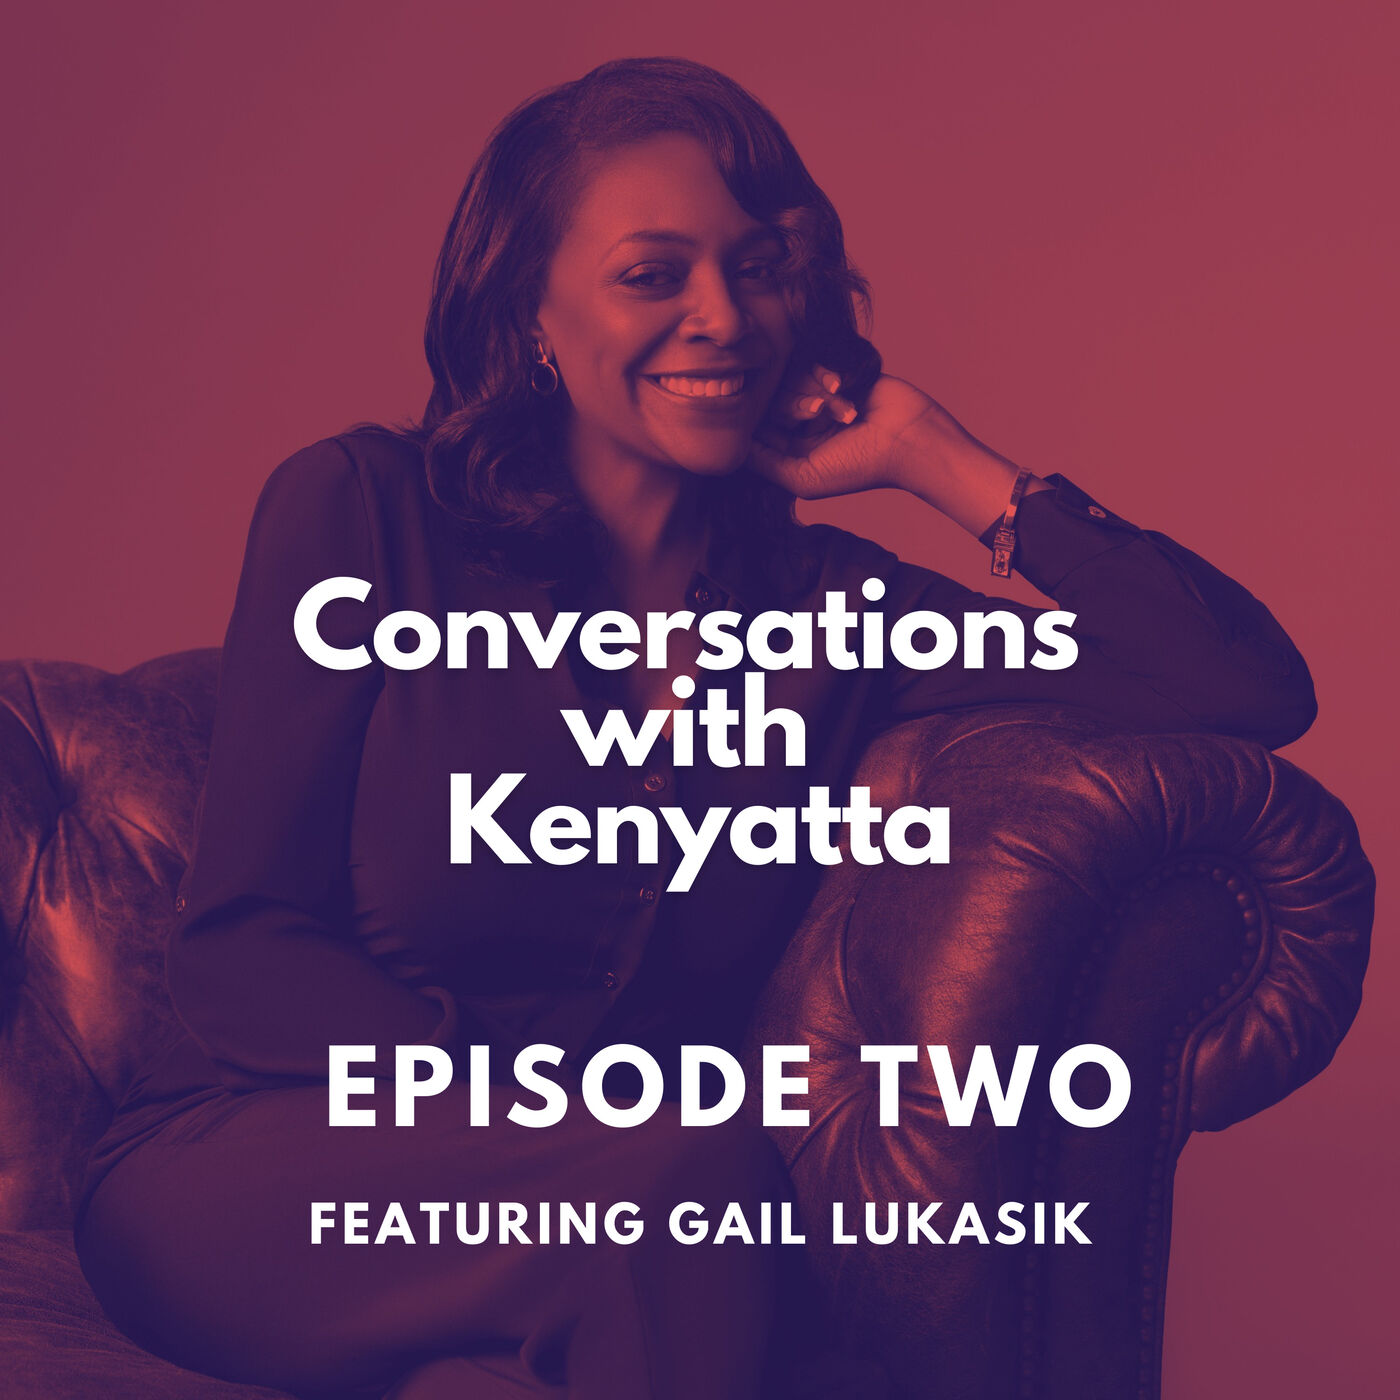 A Conversation with Gail Lukasik